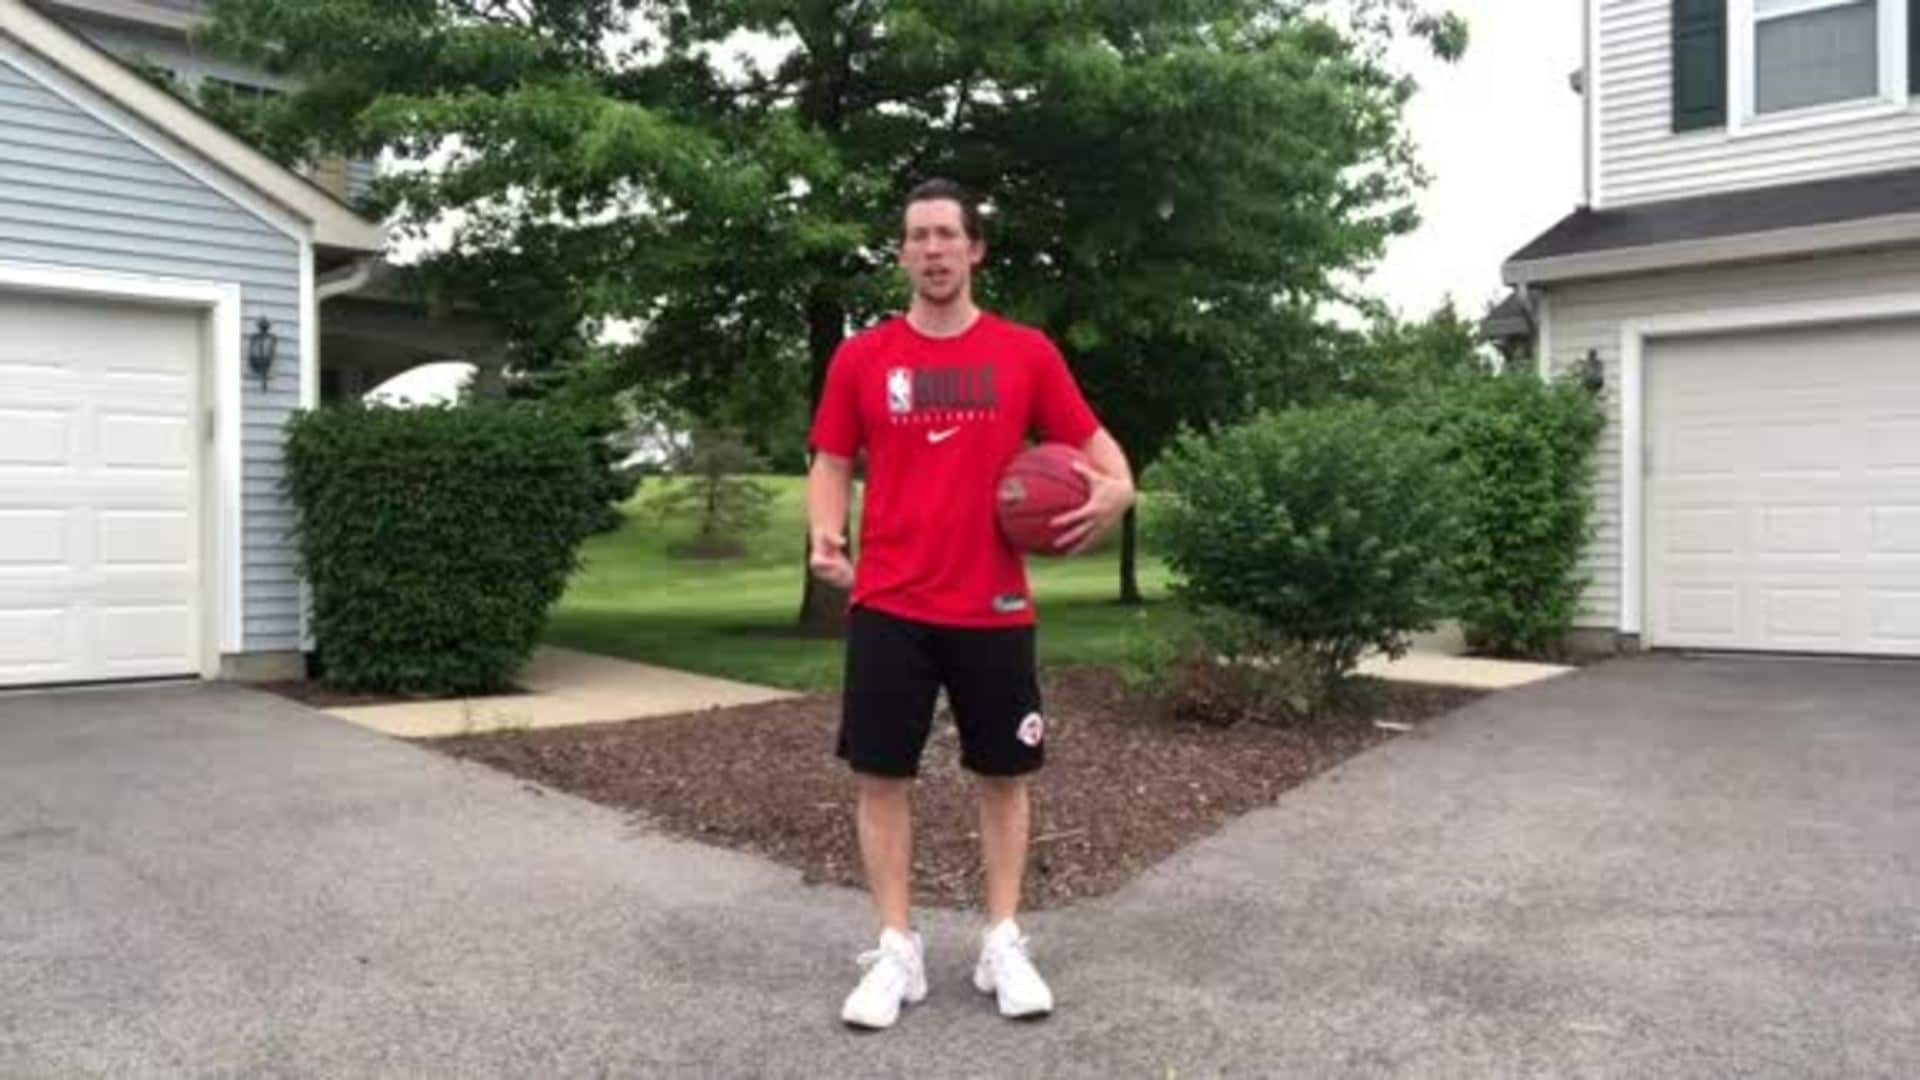 Youth Hoops Basketball Skills At Home: Crossover Progression Workout